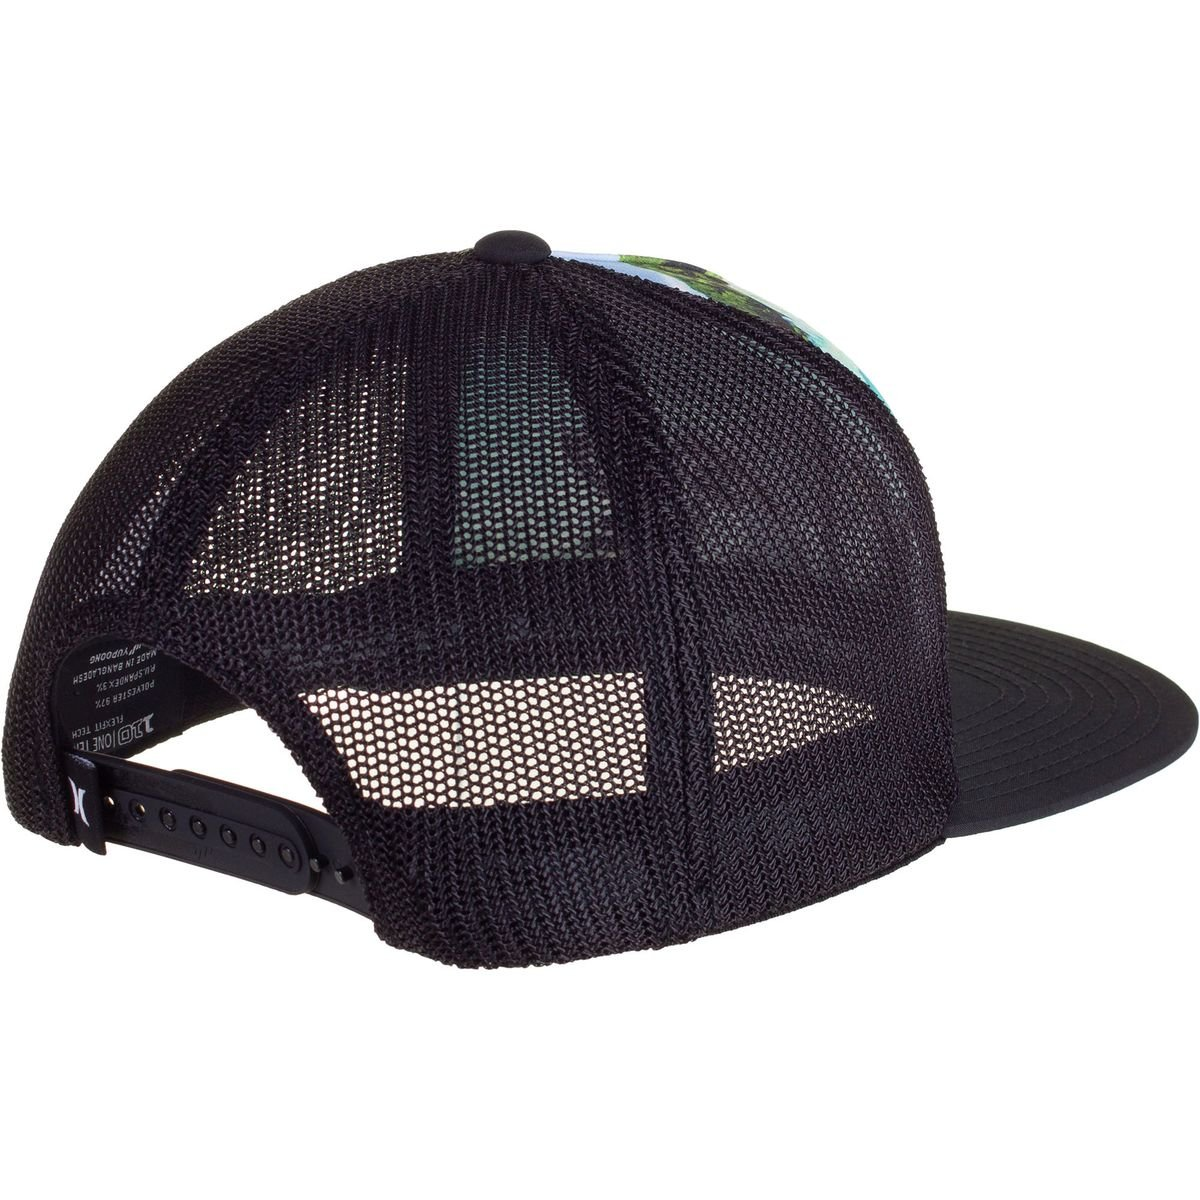 separation shoes 32066 e86a7 Hurley Clark Little Honu Trucker Hat Black, One Size  Amazon.ca  Clothing    Accessories